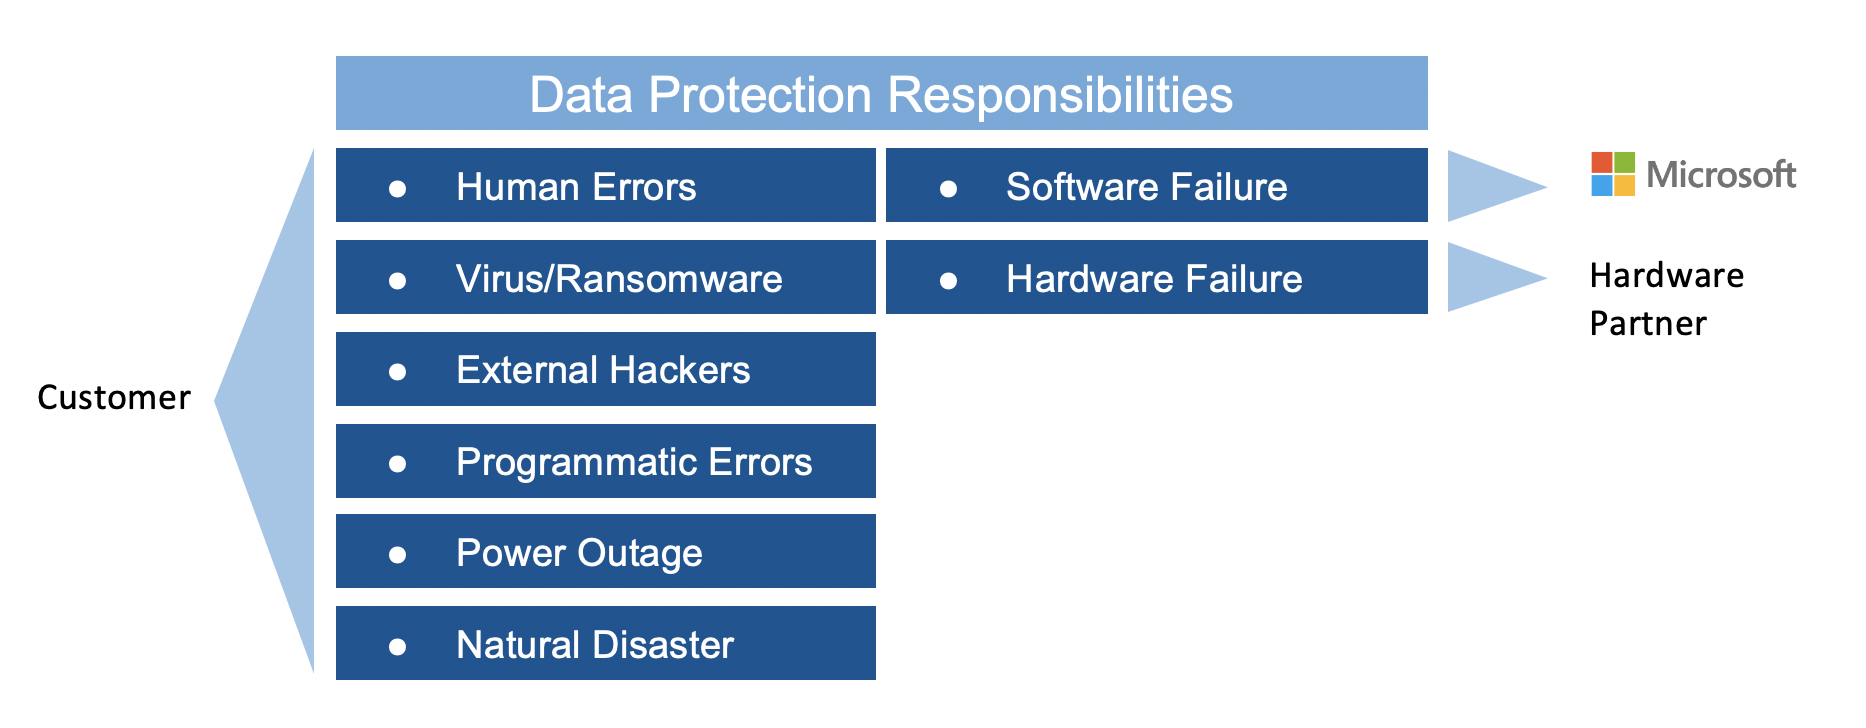 Data Protection Responsibilities for Azure Stack